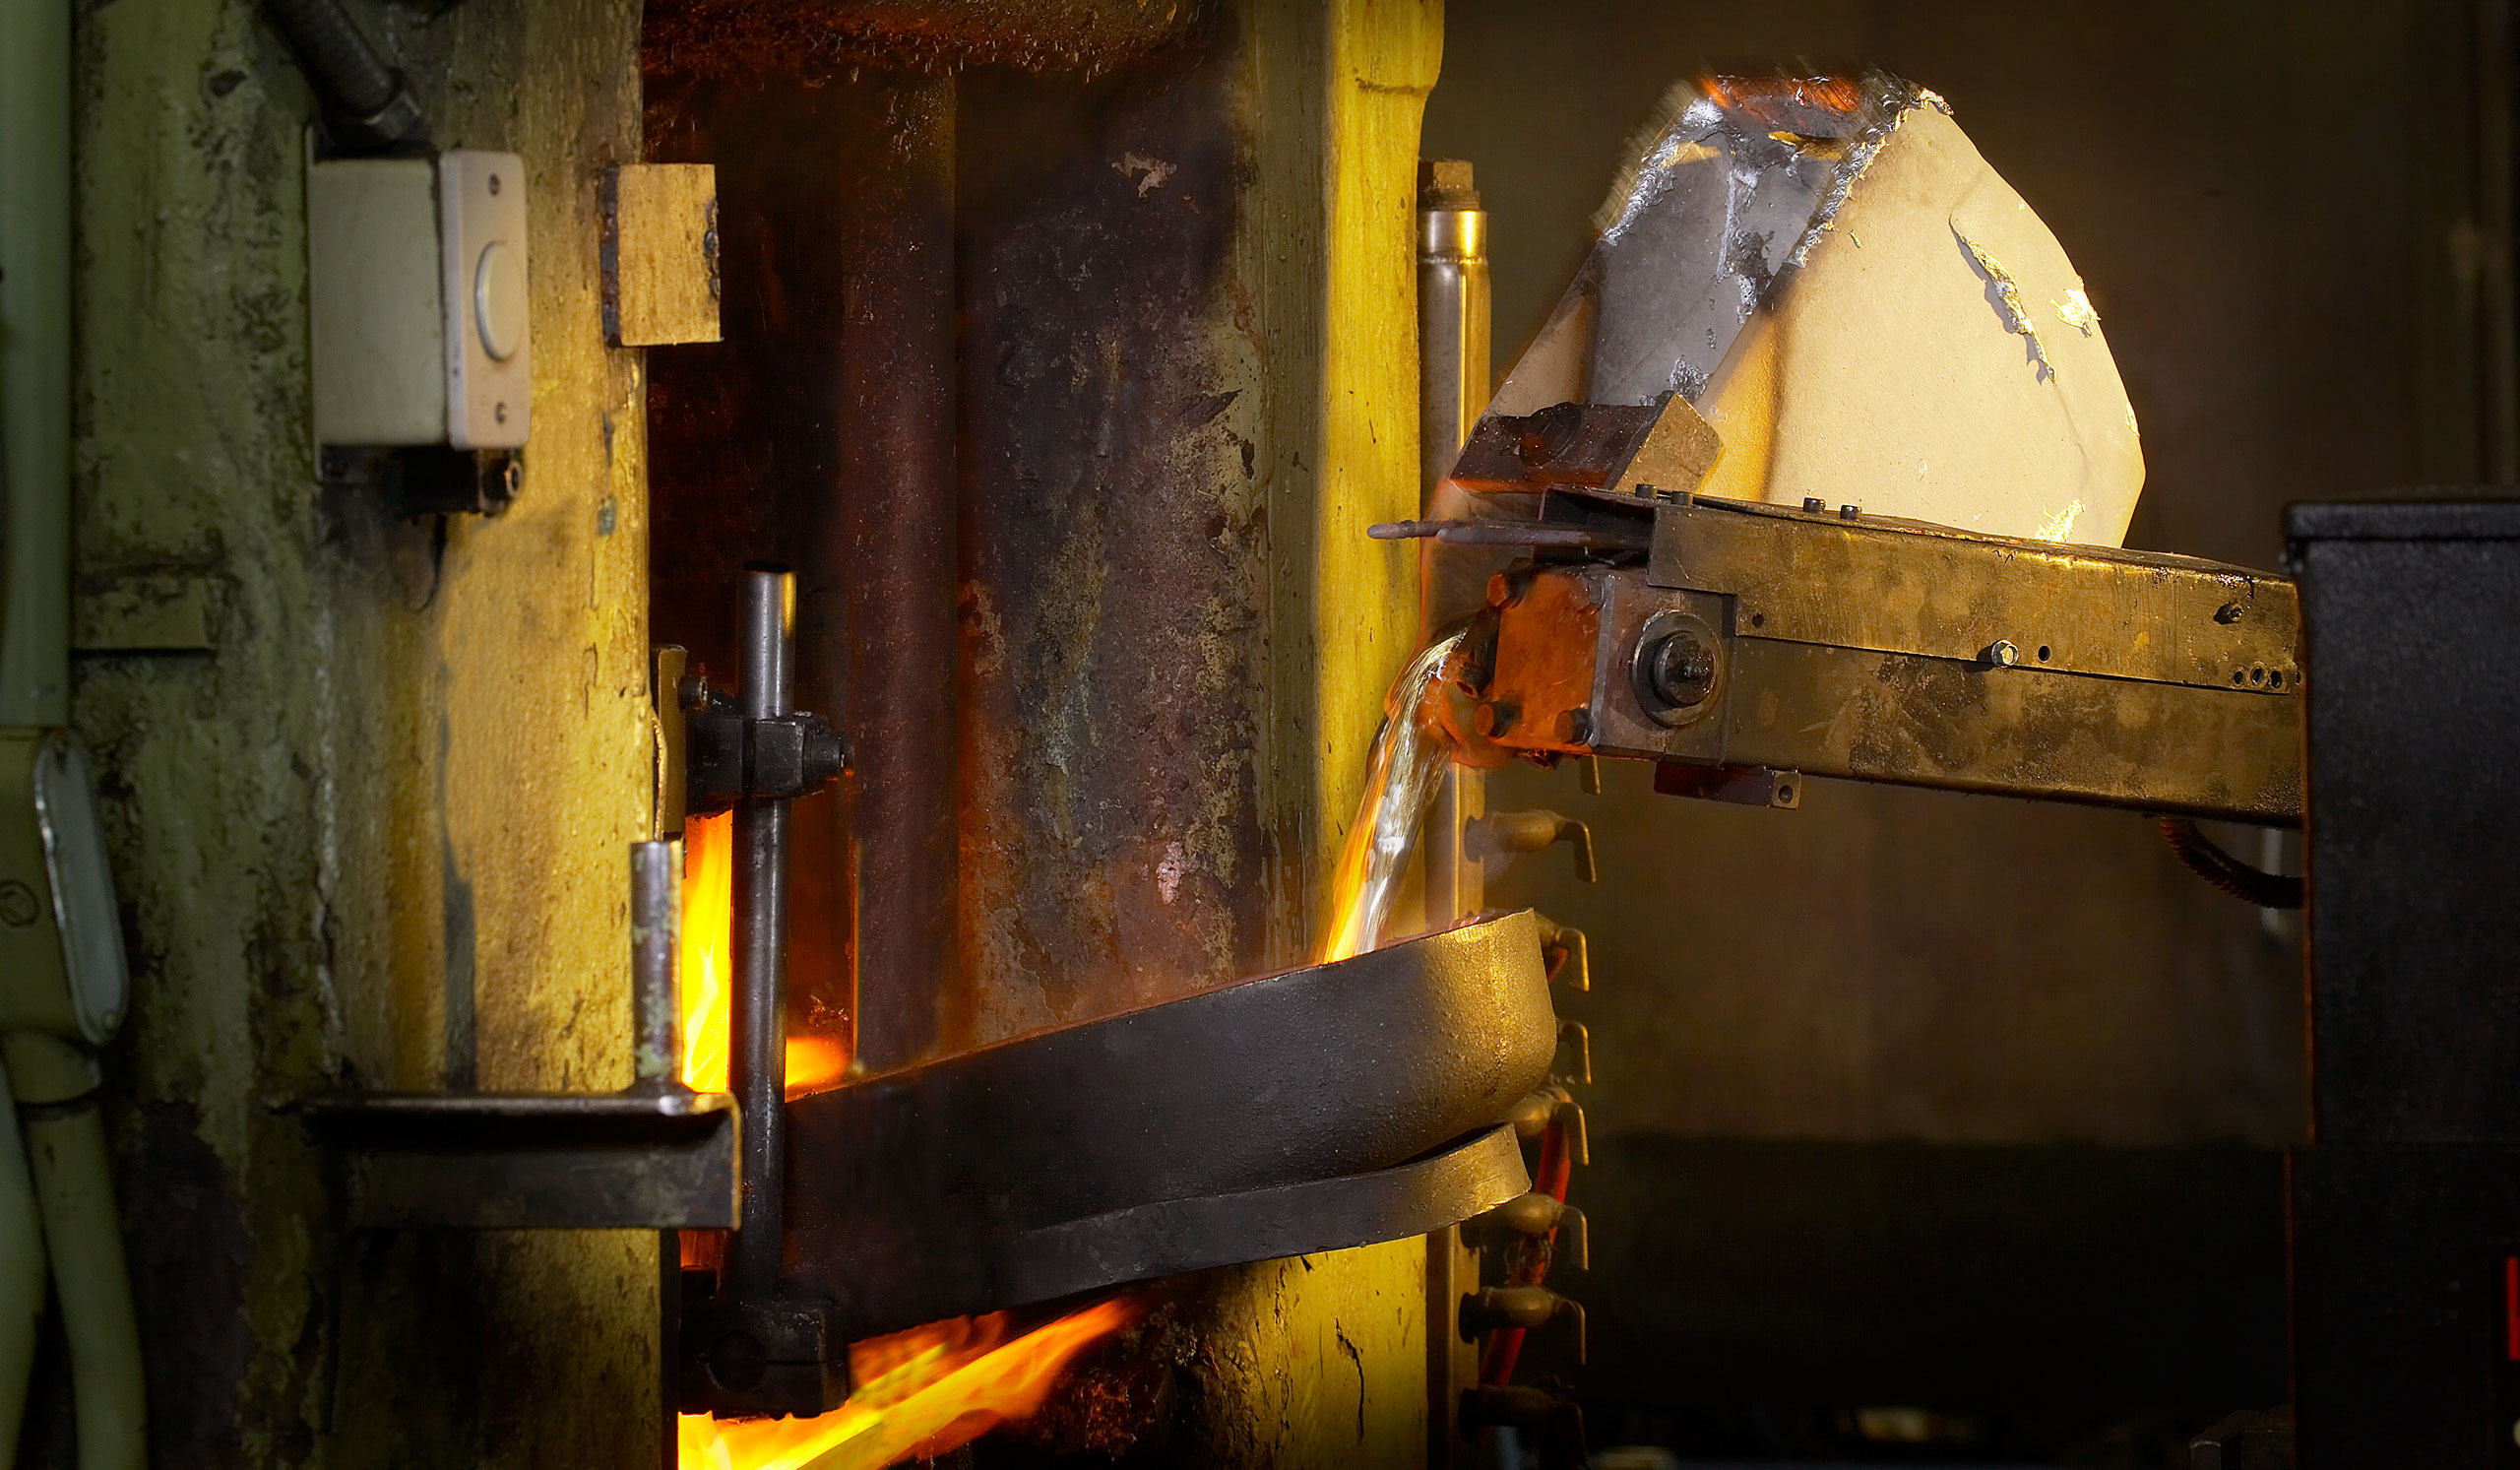 Molten material pouring from hopper in Foundry